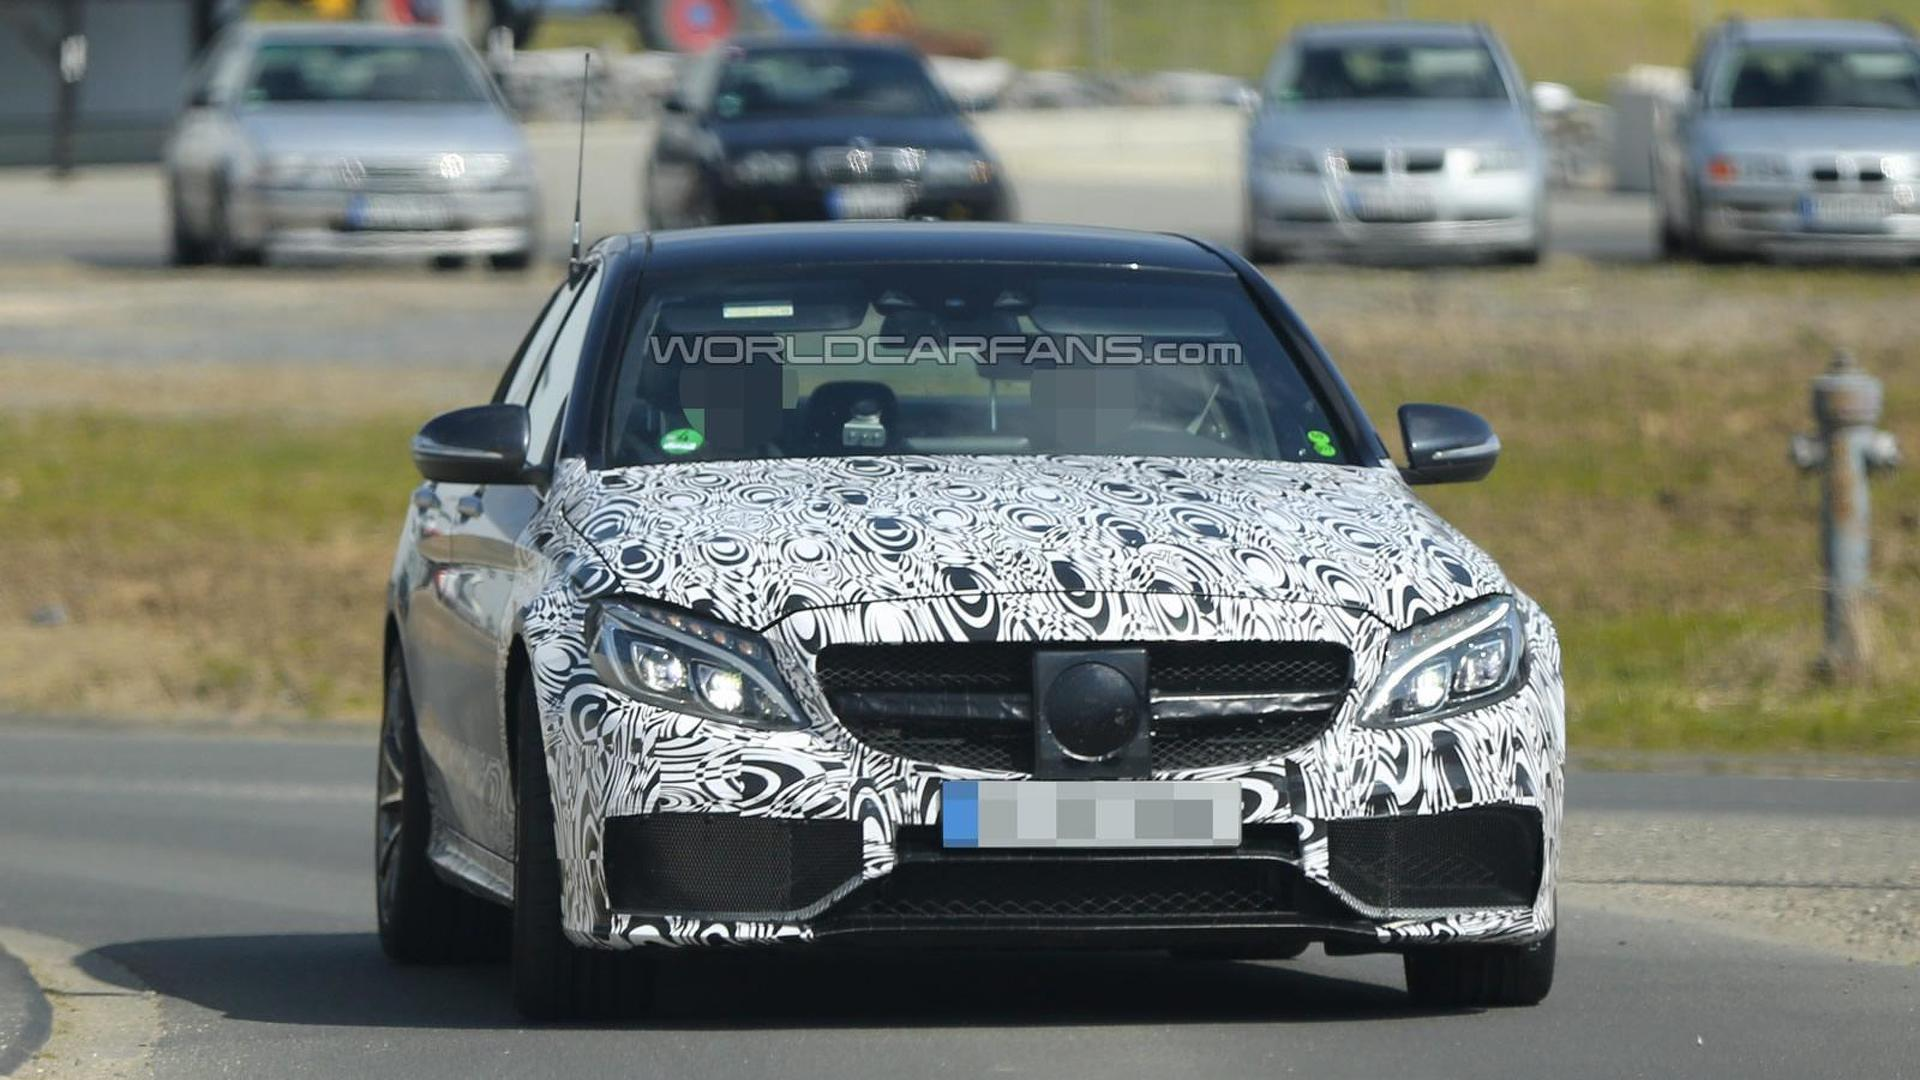 Mercedes-Benz C63 AMG sedan spied wearing less camo on front bumper